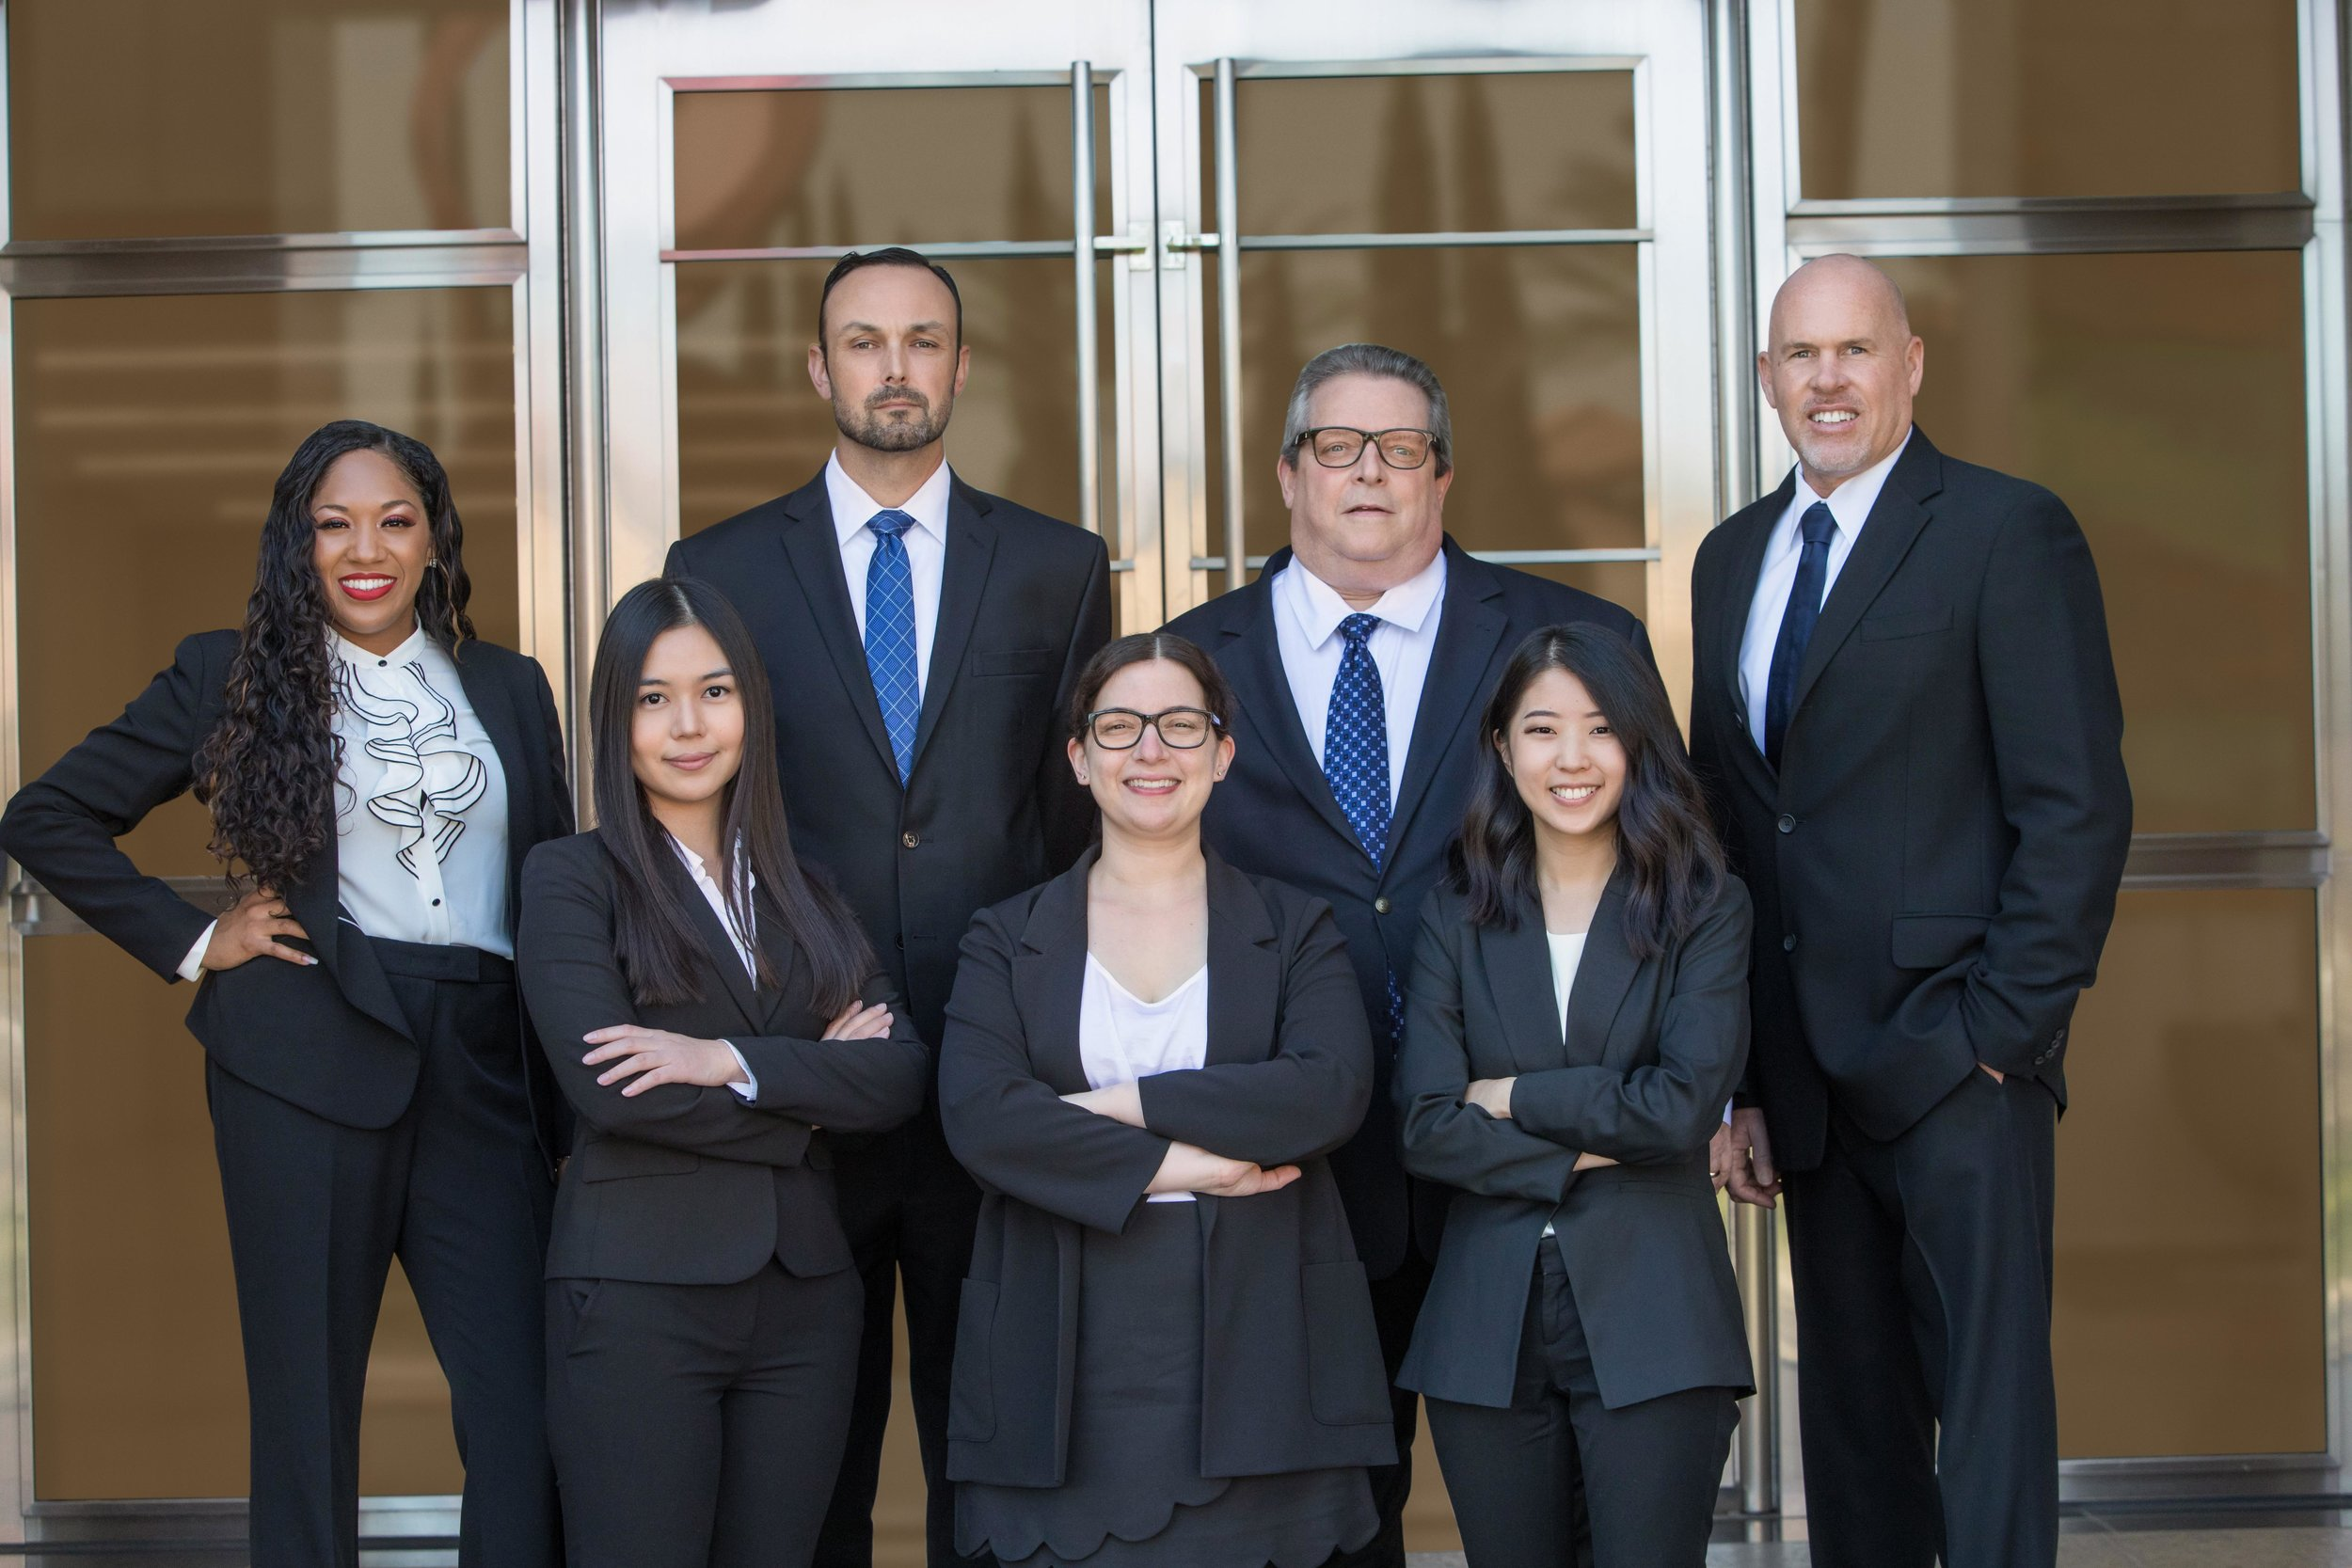 Merrill Lynch financial advisors and directors professional corporate headshot and team photography for men and women.